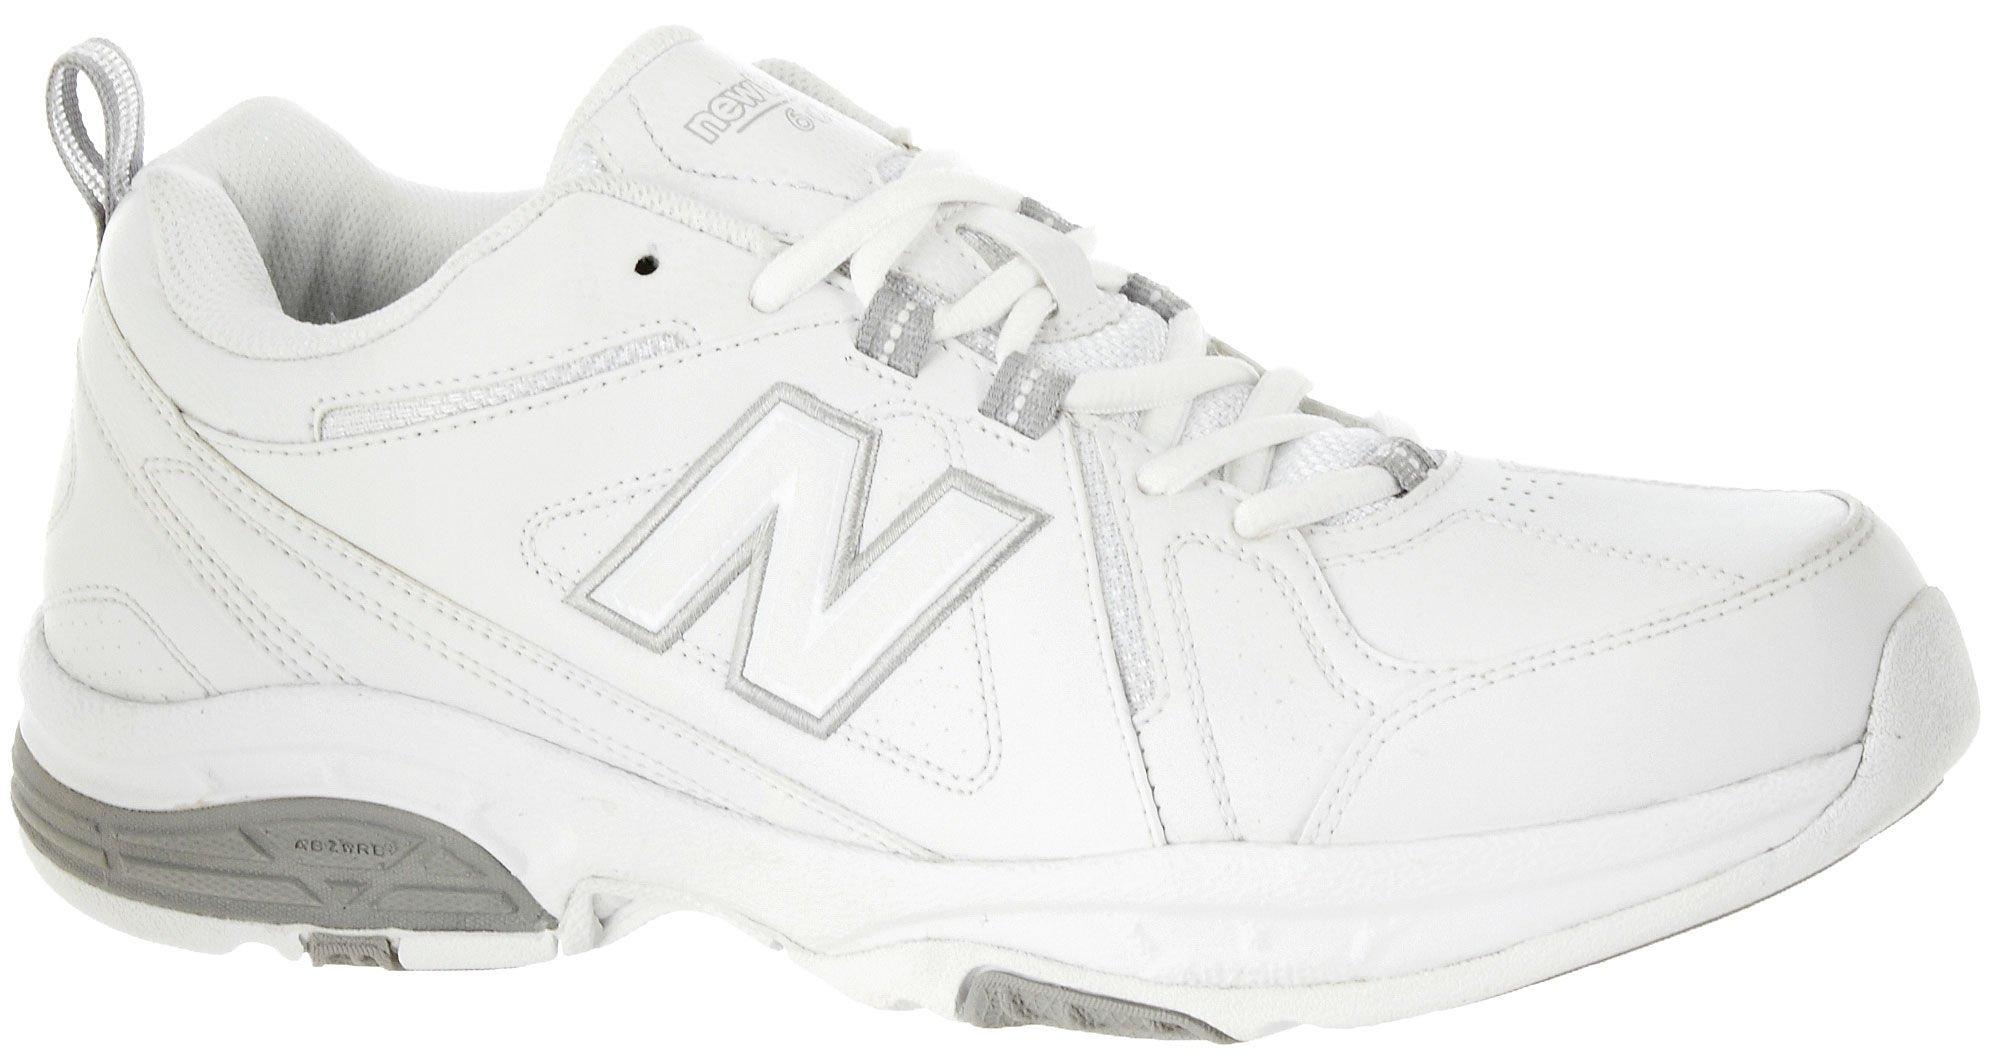 New Balance Mens 608 Cross Trainers